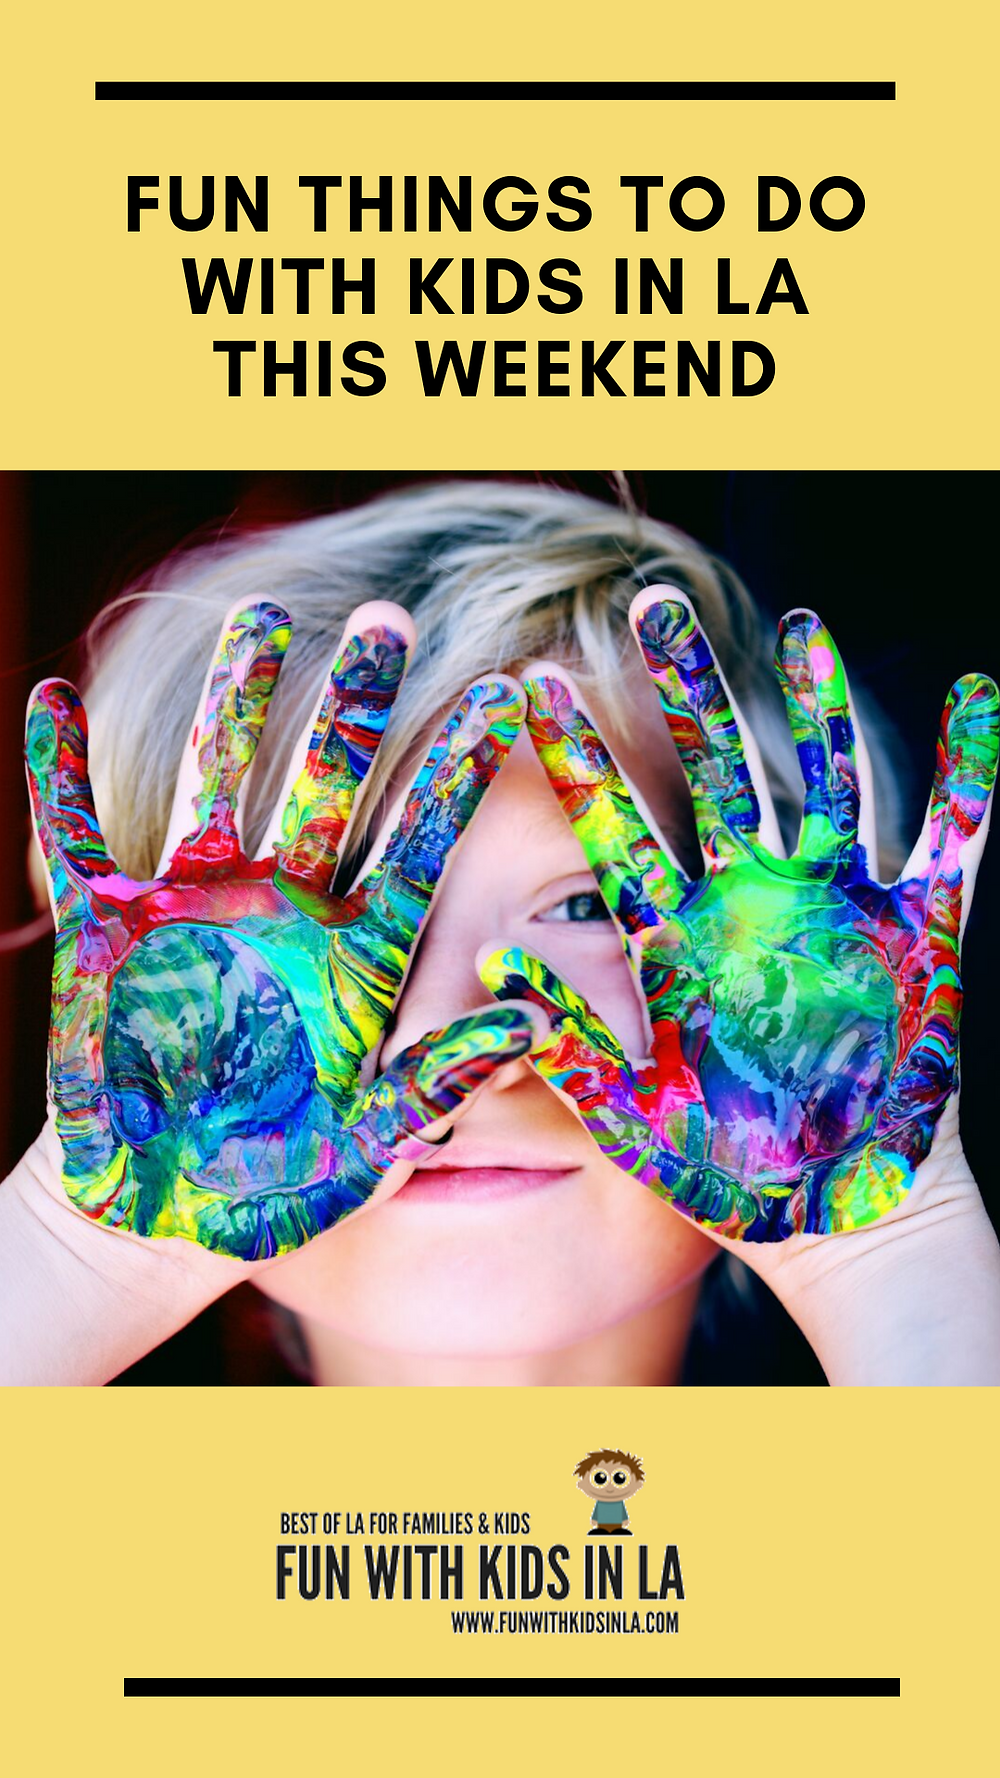 Fun things to do with kids in LA